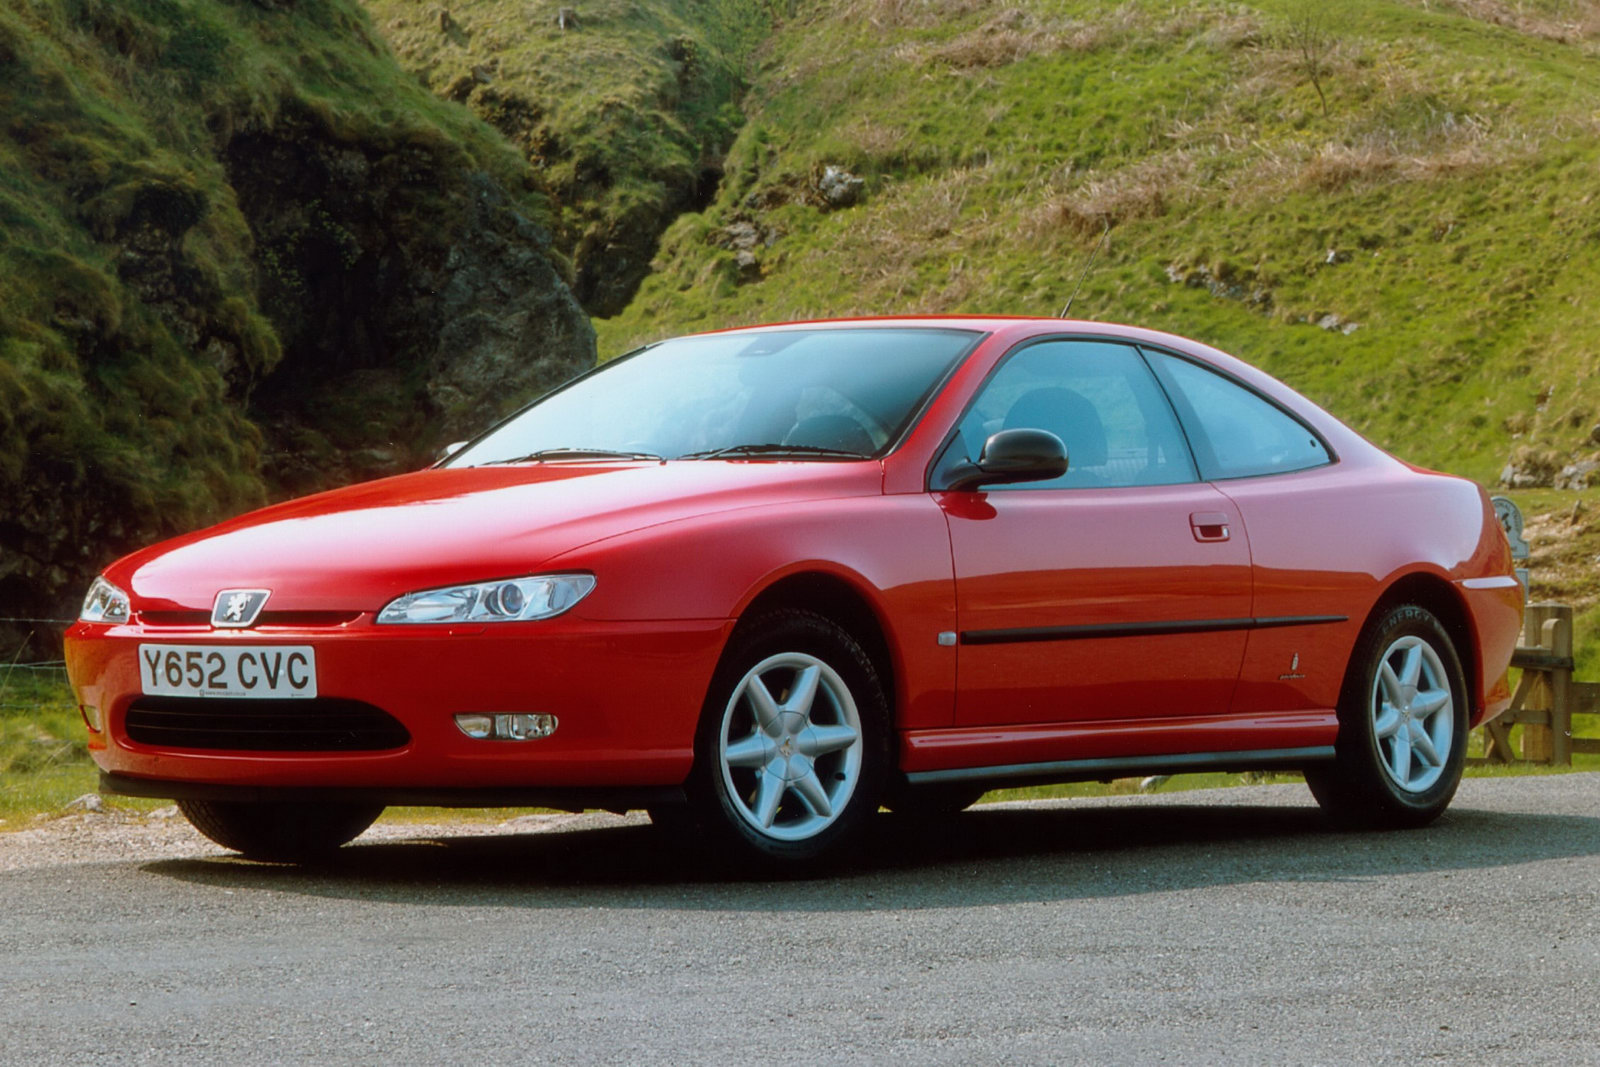 peugeot 406 coup club celebrates three anniversaries with special meeting